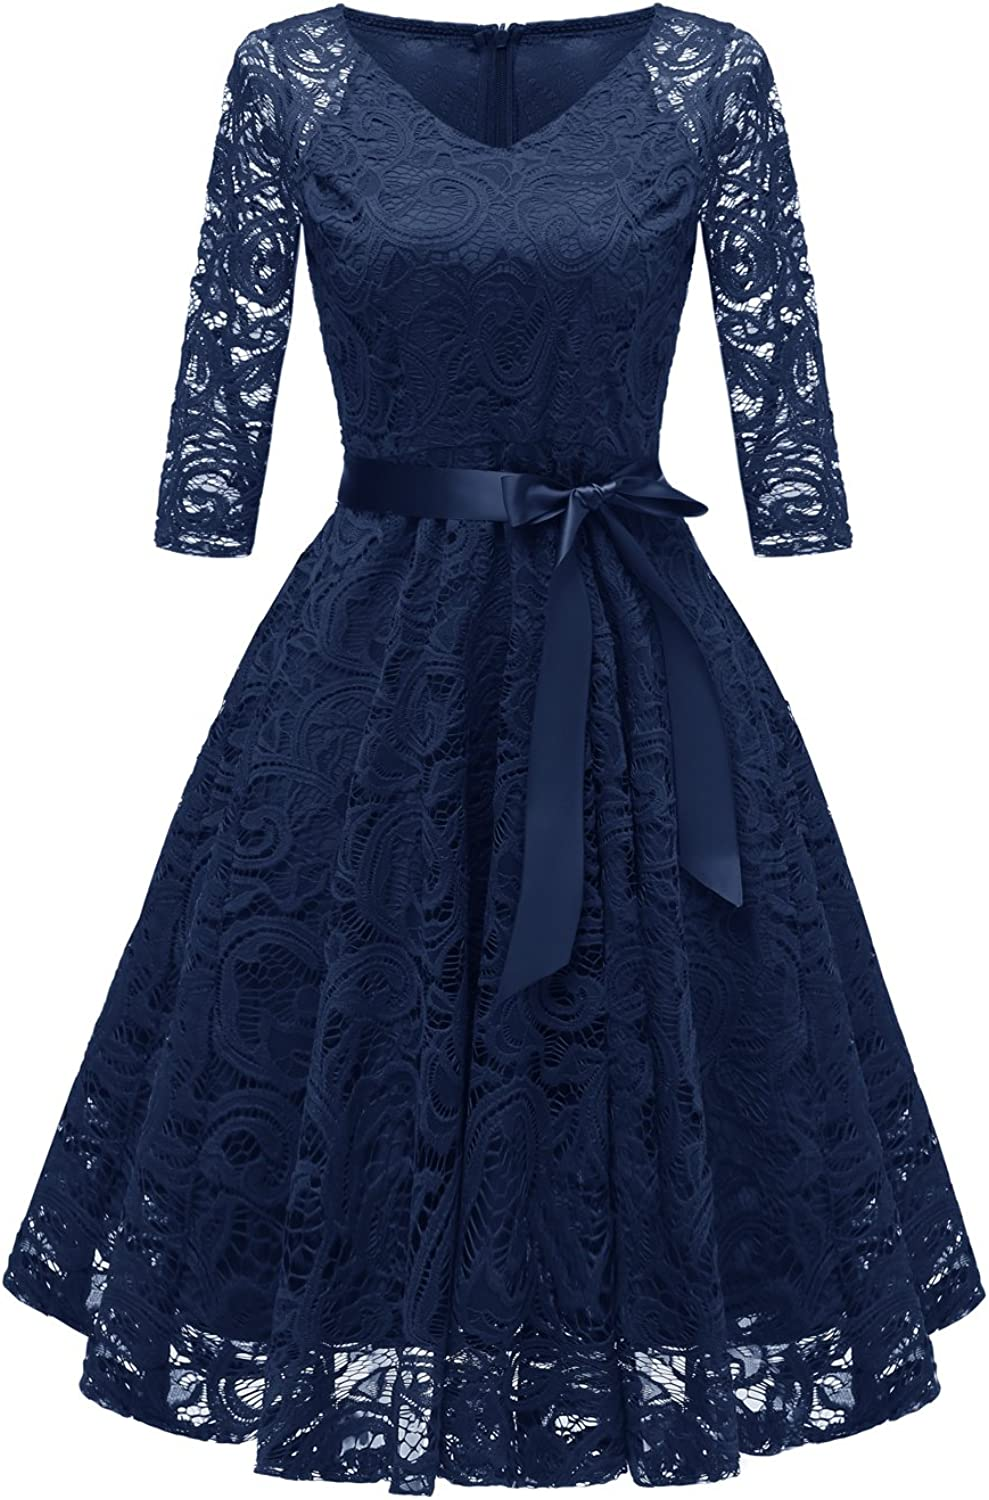 Chowsir Women Fashion V-Neck Formal Lace Evening Party Prom Midi Dress